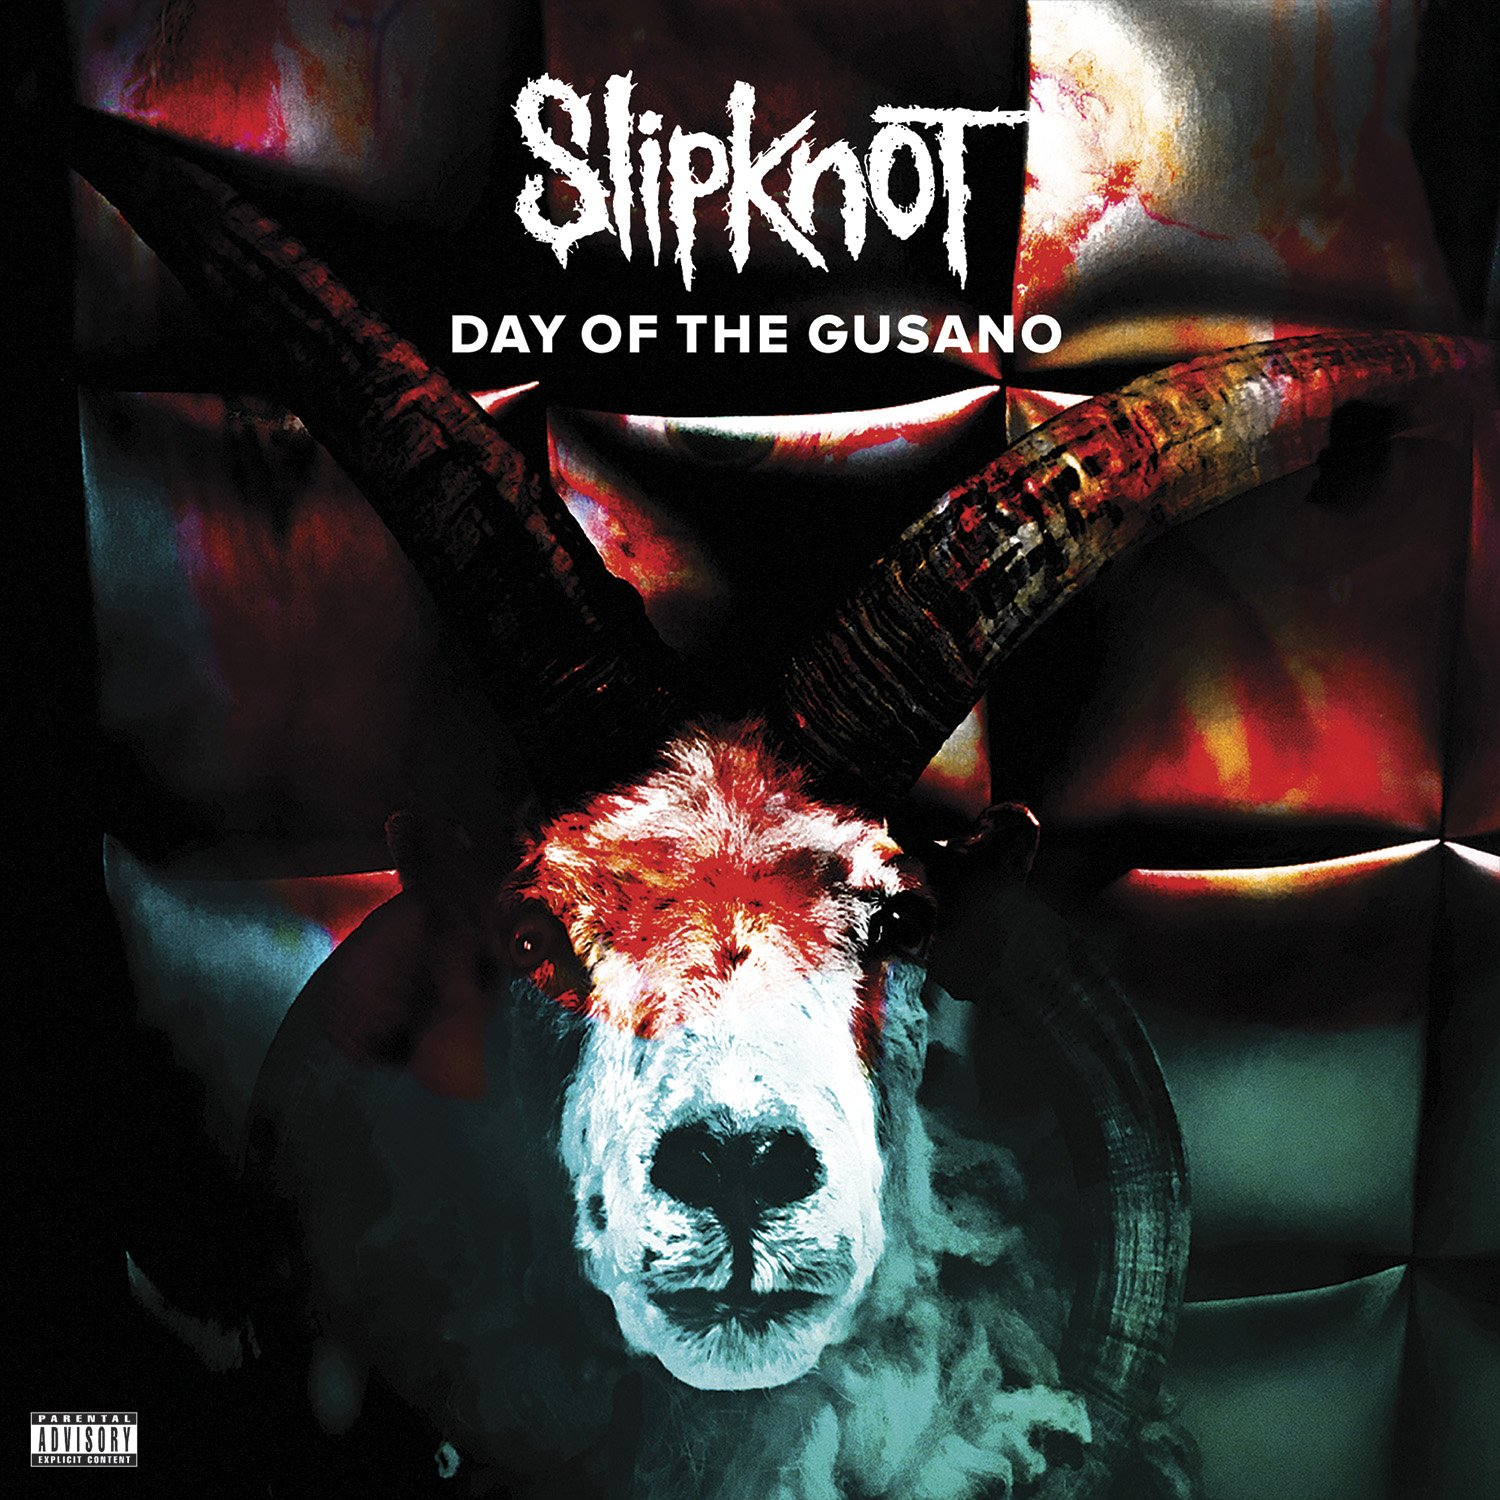 DVD : Slipknot - Day Of The Gusano [Explicit Content] (With CD, Limited Edition, Deluxe Edition, 3 Disc)